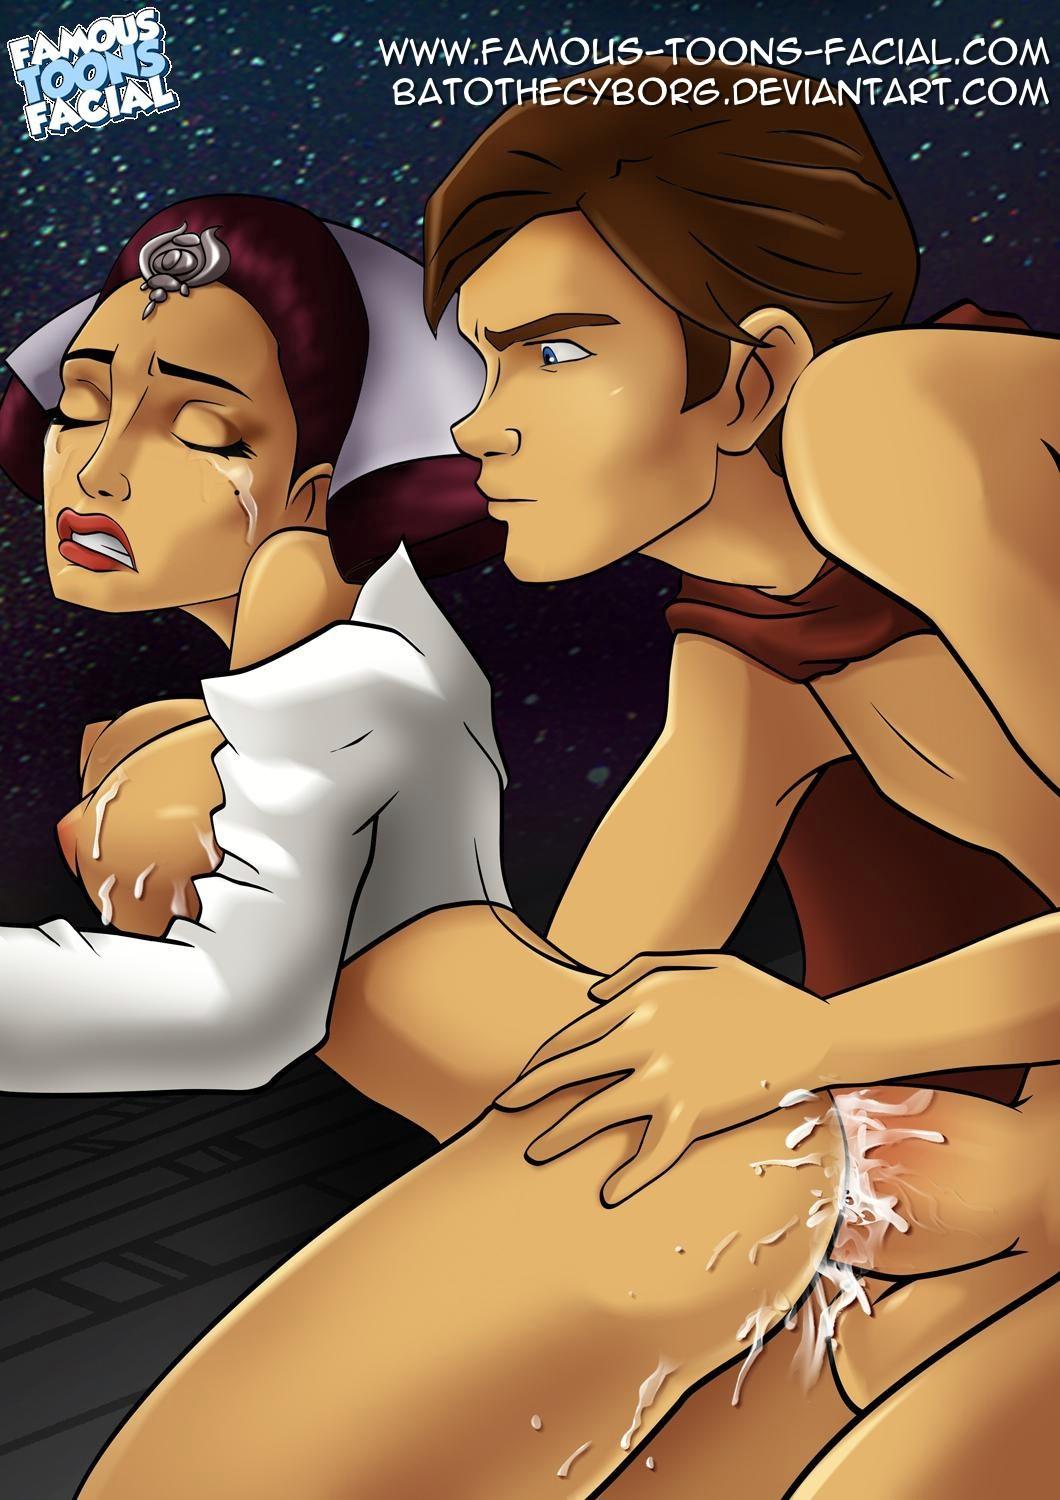 Starwars cartoon porno pics naked gallery